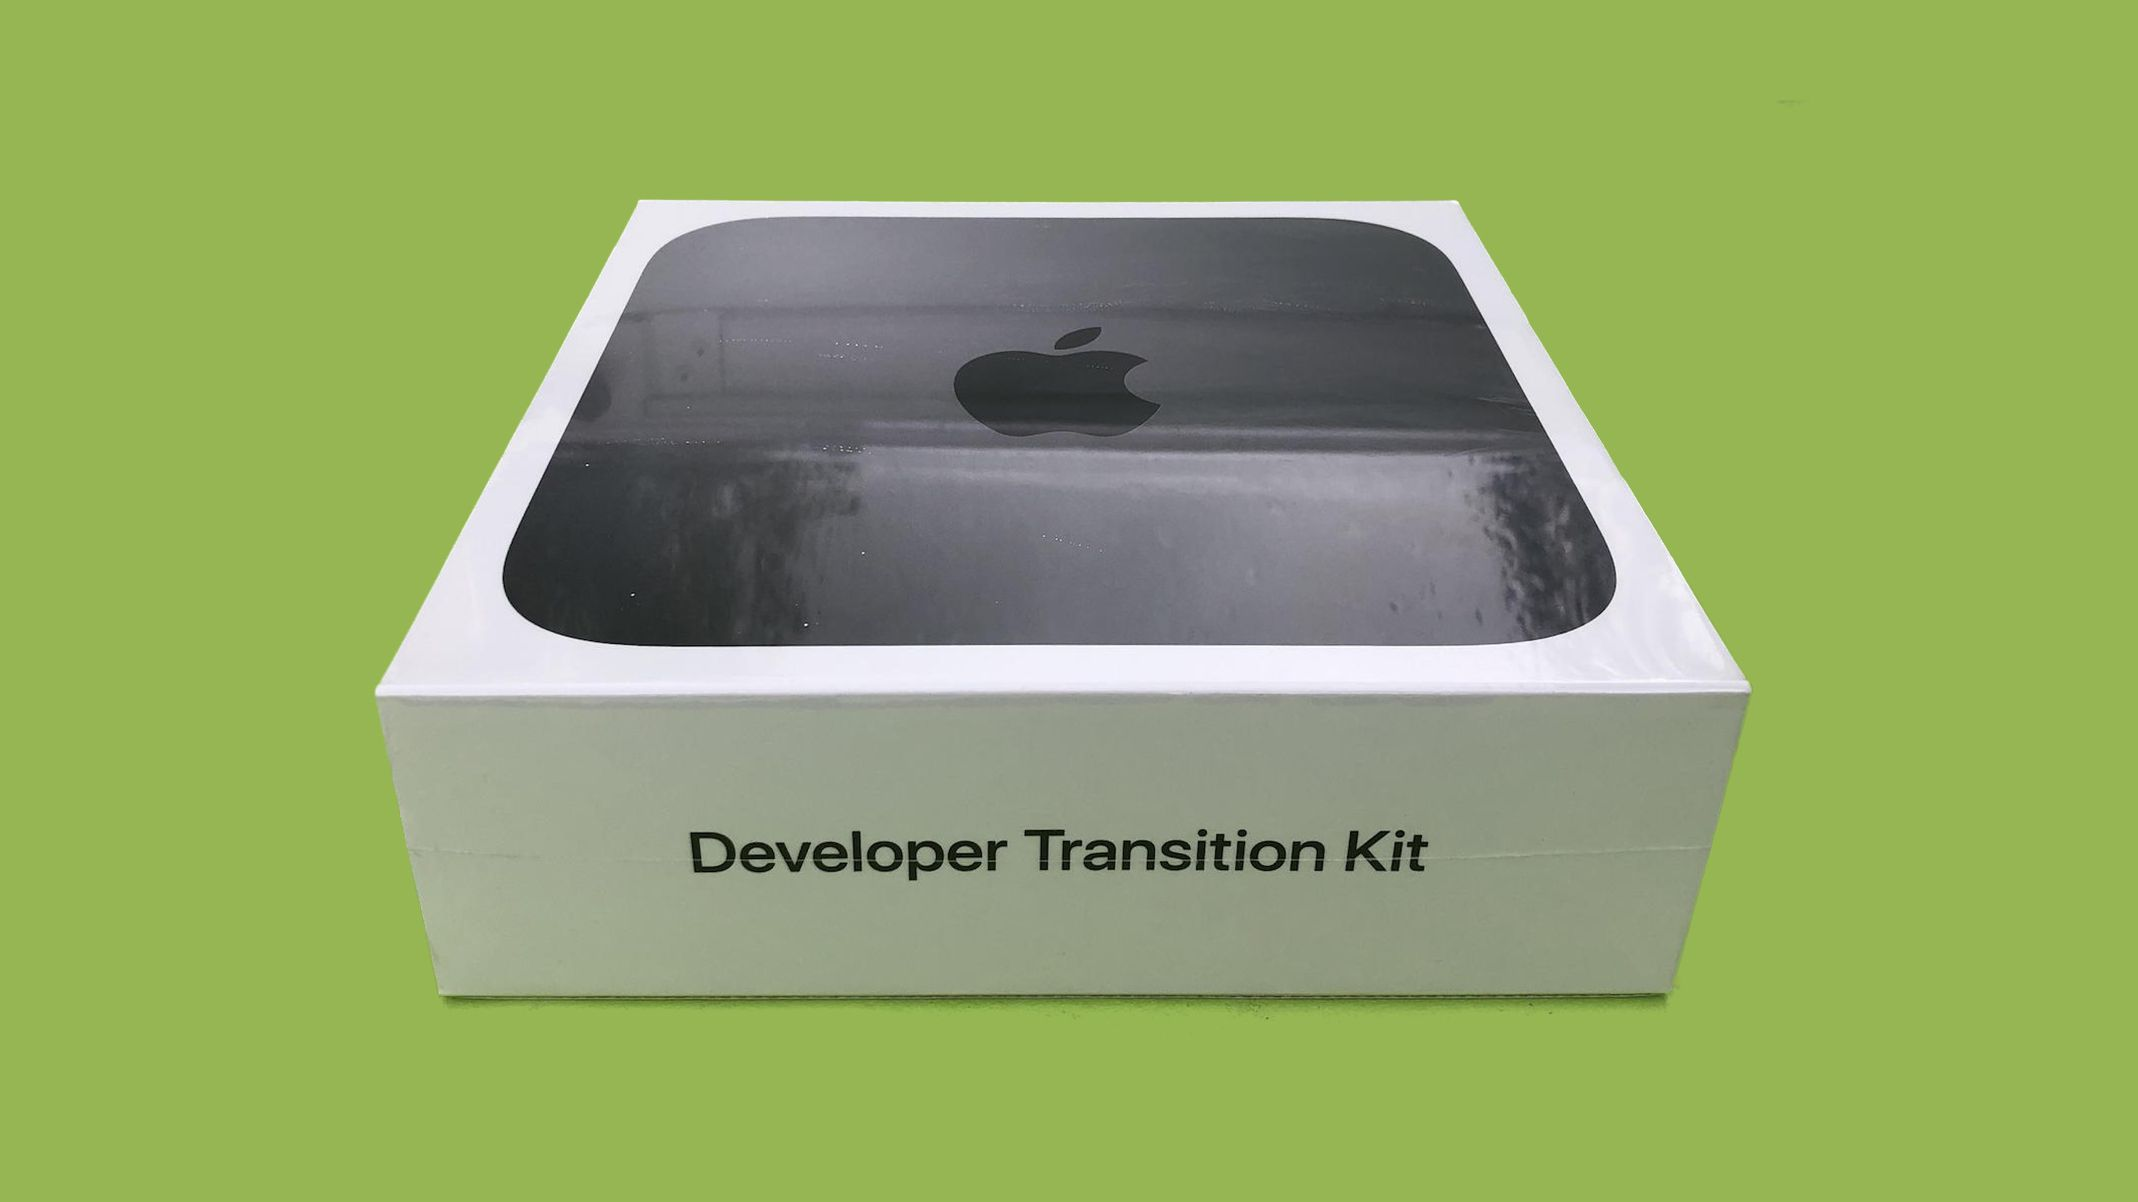 photo of Developers Start Receiving $500 Credits for Returning DTK Mac Minis image